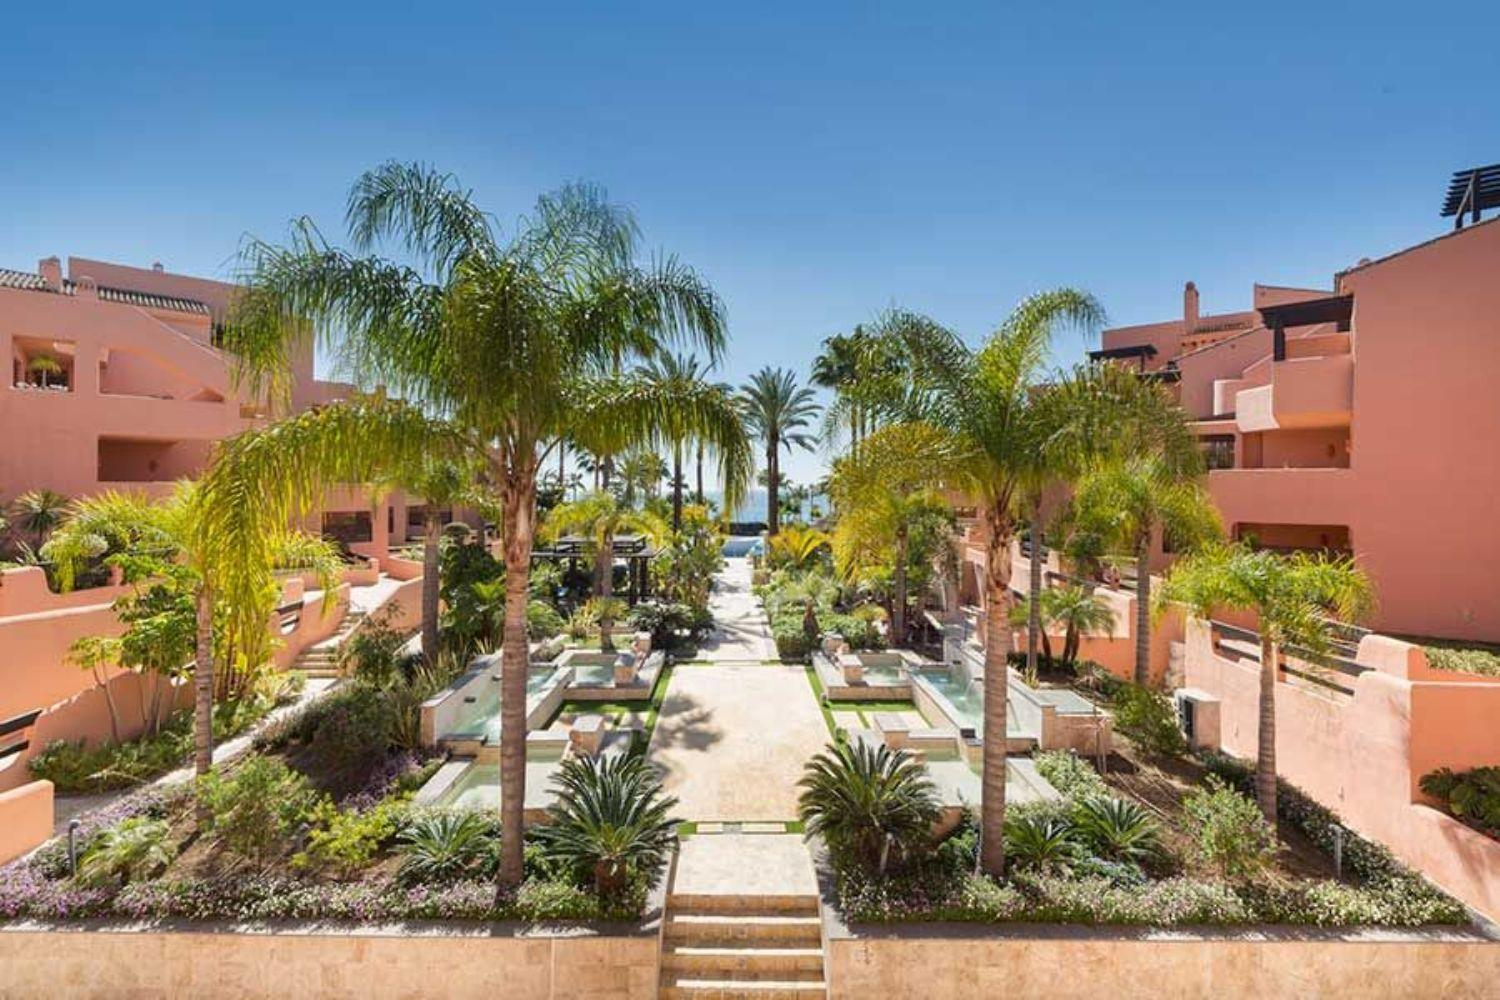 43168 2553835 foto 716540 - Fantastic penthouse on the beachfront of the New Golden Mile